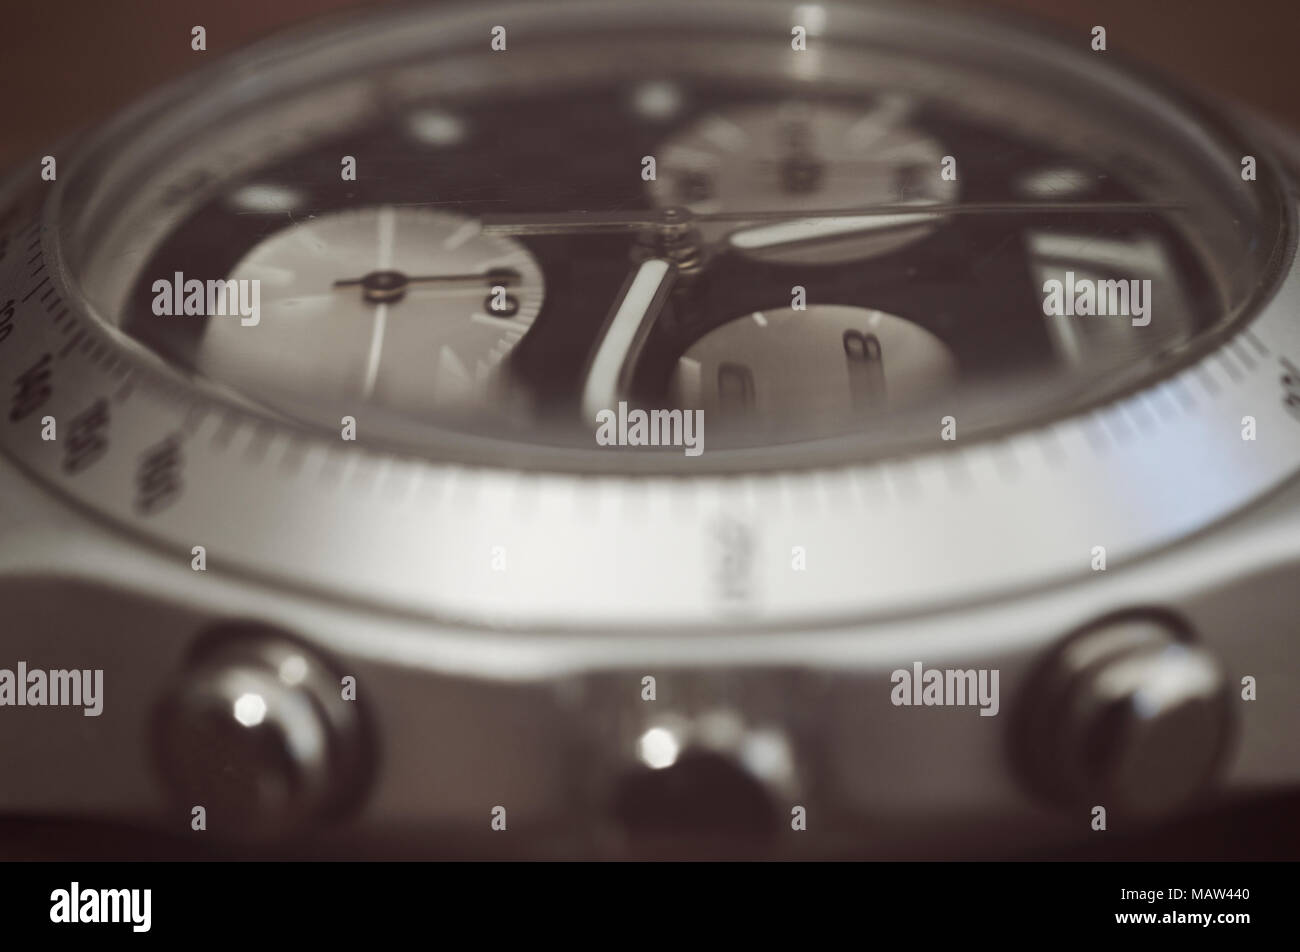 detail of a chronometer wrist watch - Stock Image